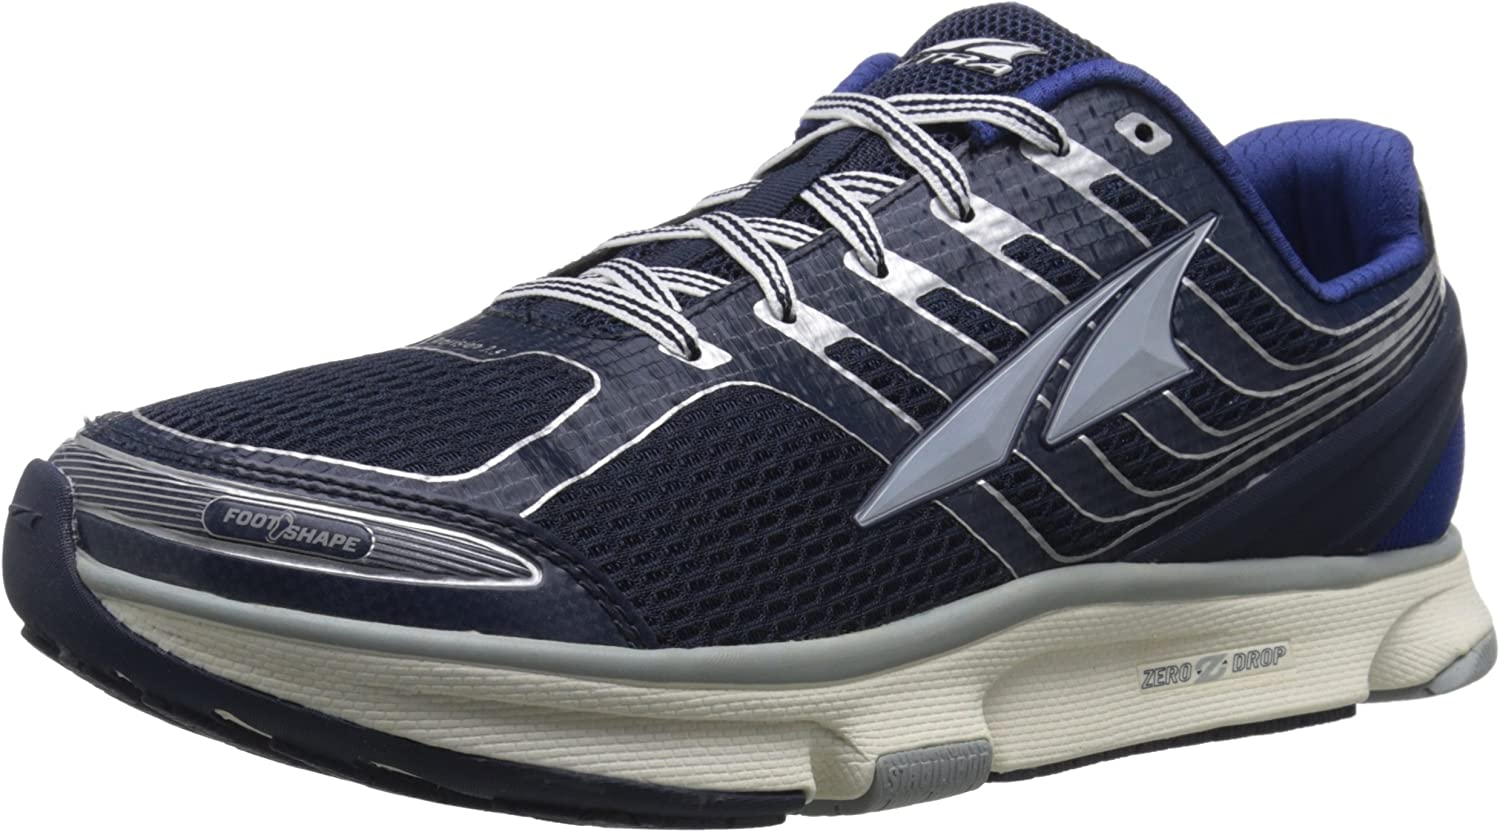 Altra Men's Provision 2.5 Running shoes